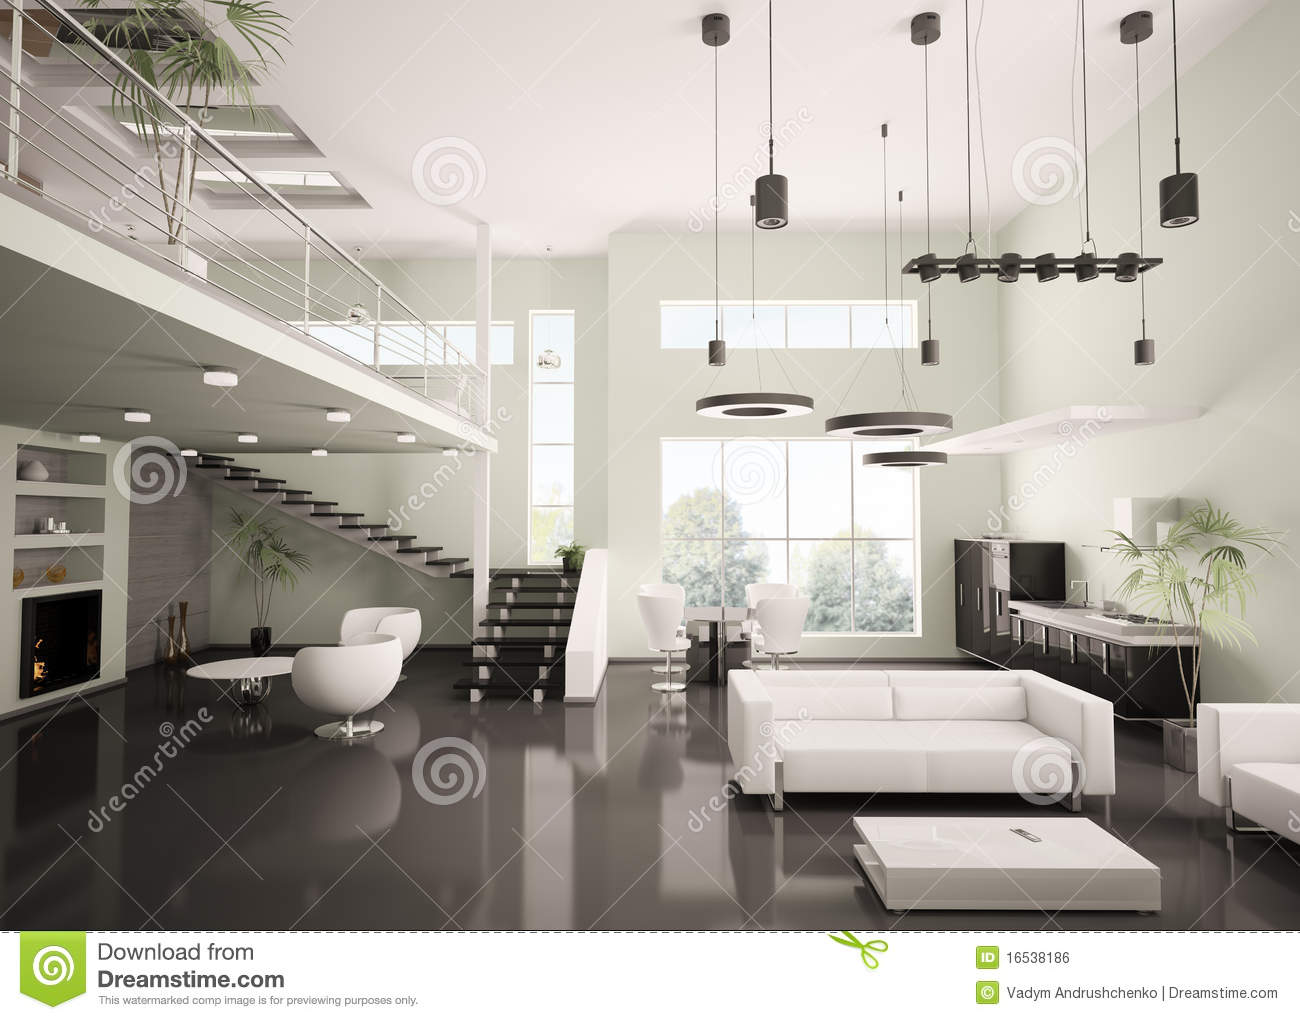 Modern Apartment Interior 3d Render Stock Illustration  Image 16538186